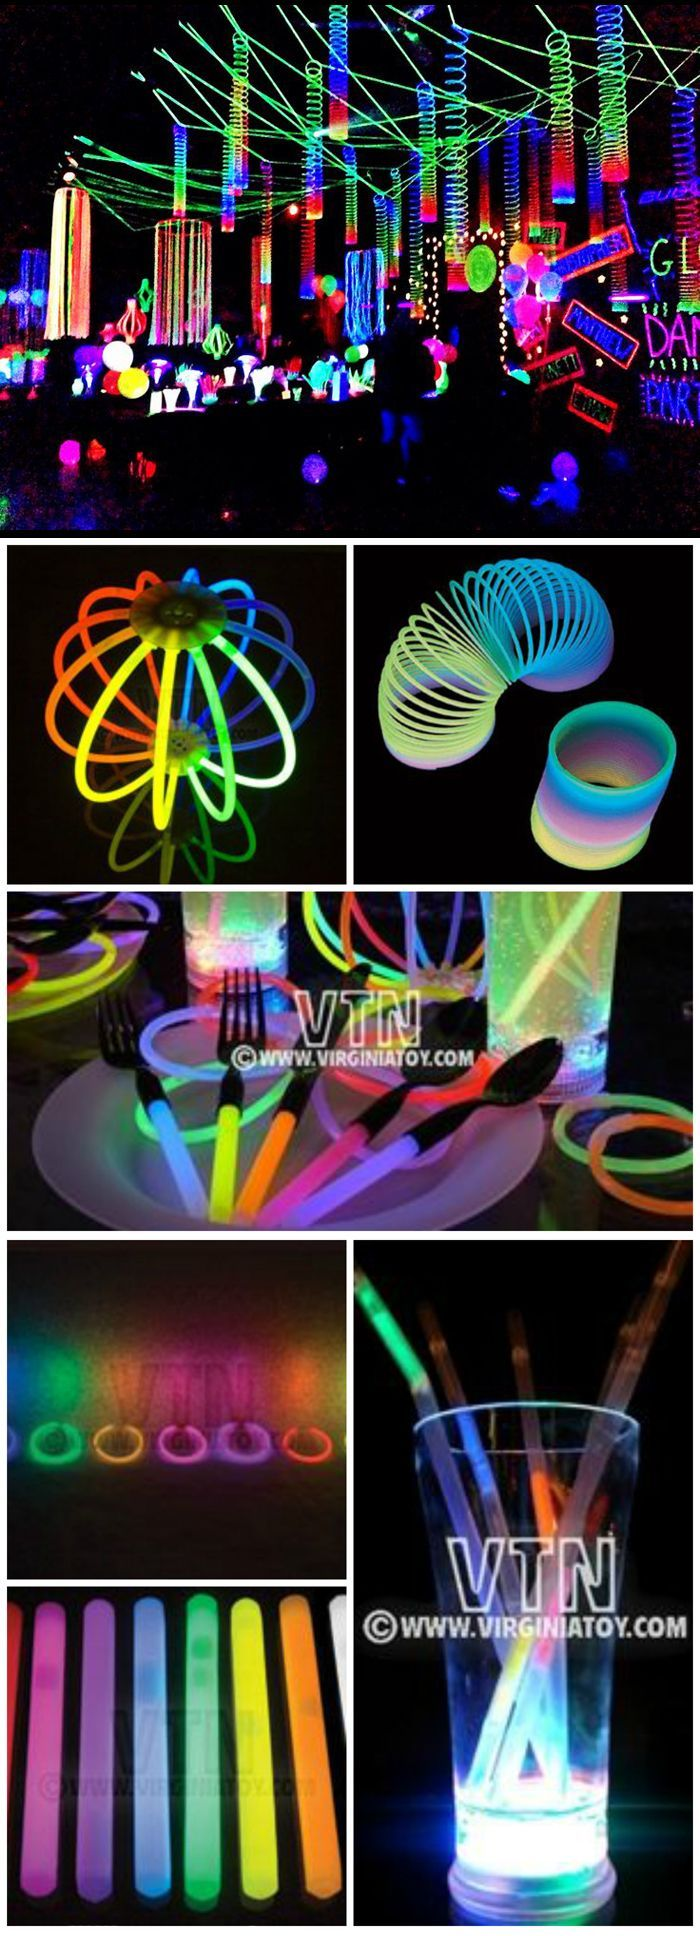 transformed t believe you decorations what they in glow ultimate the roundup ideas like diy were decor into looked dark project won before skulls